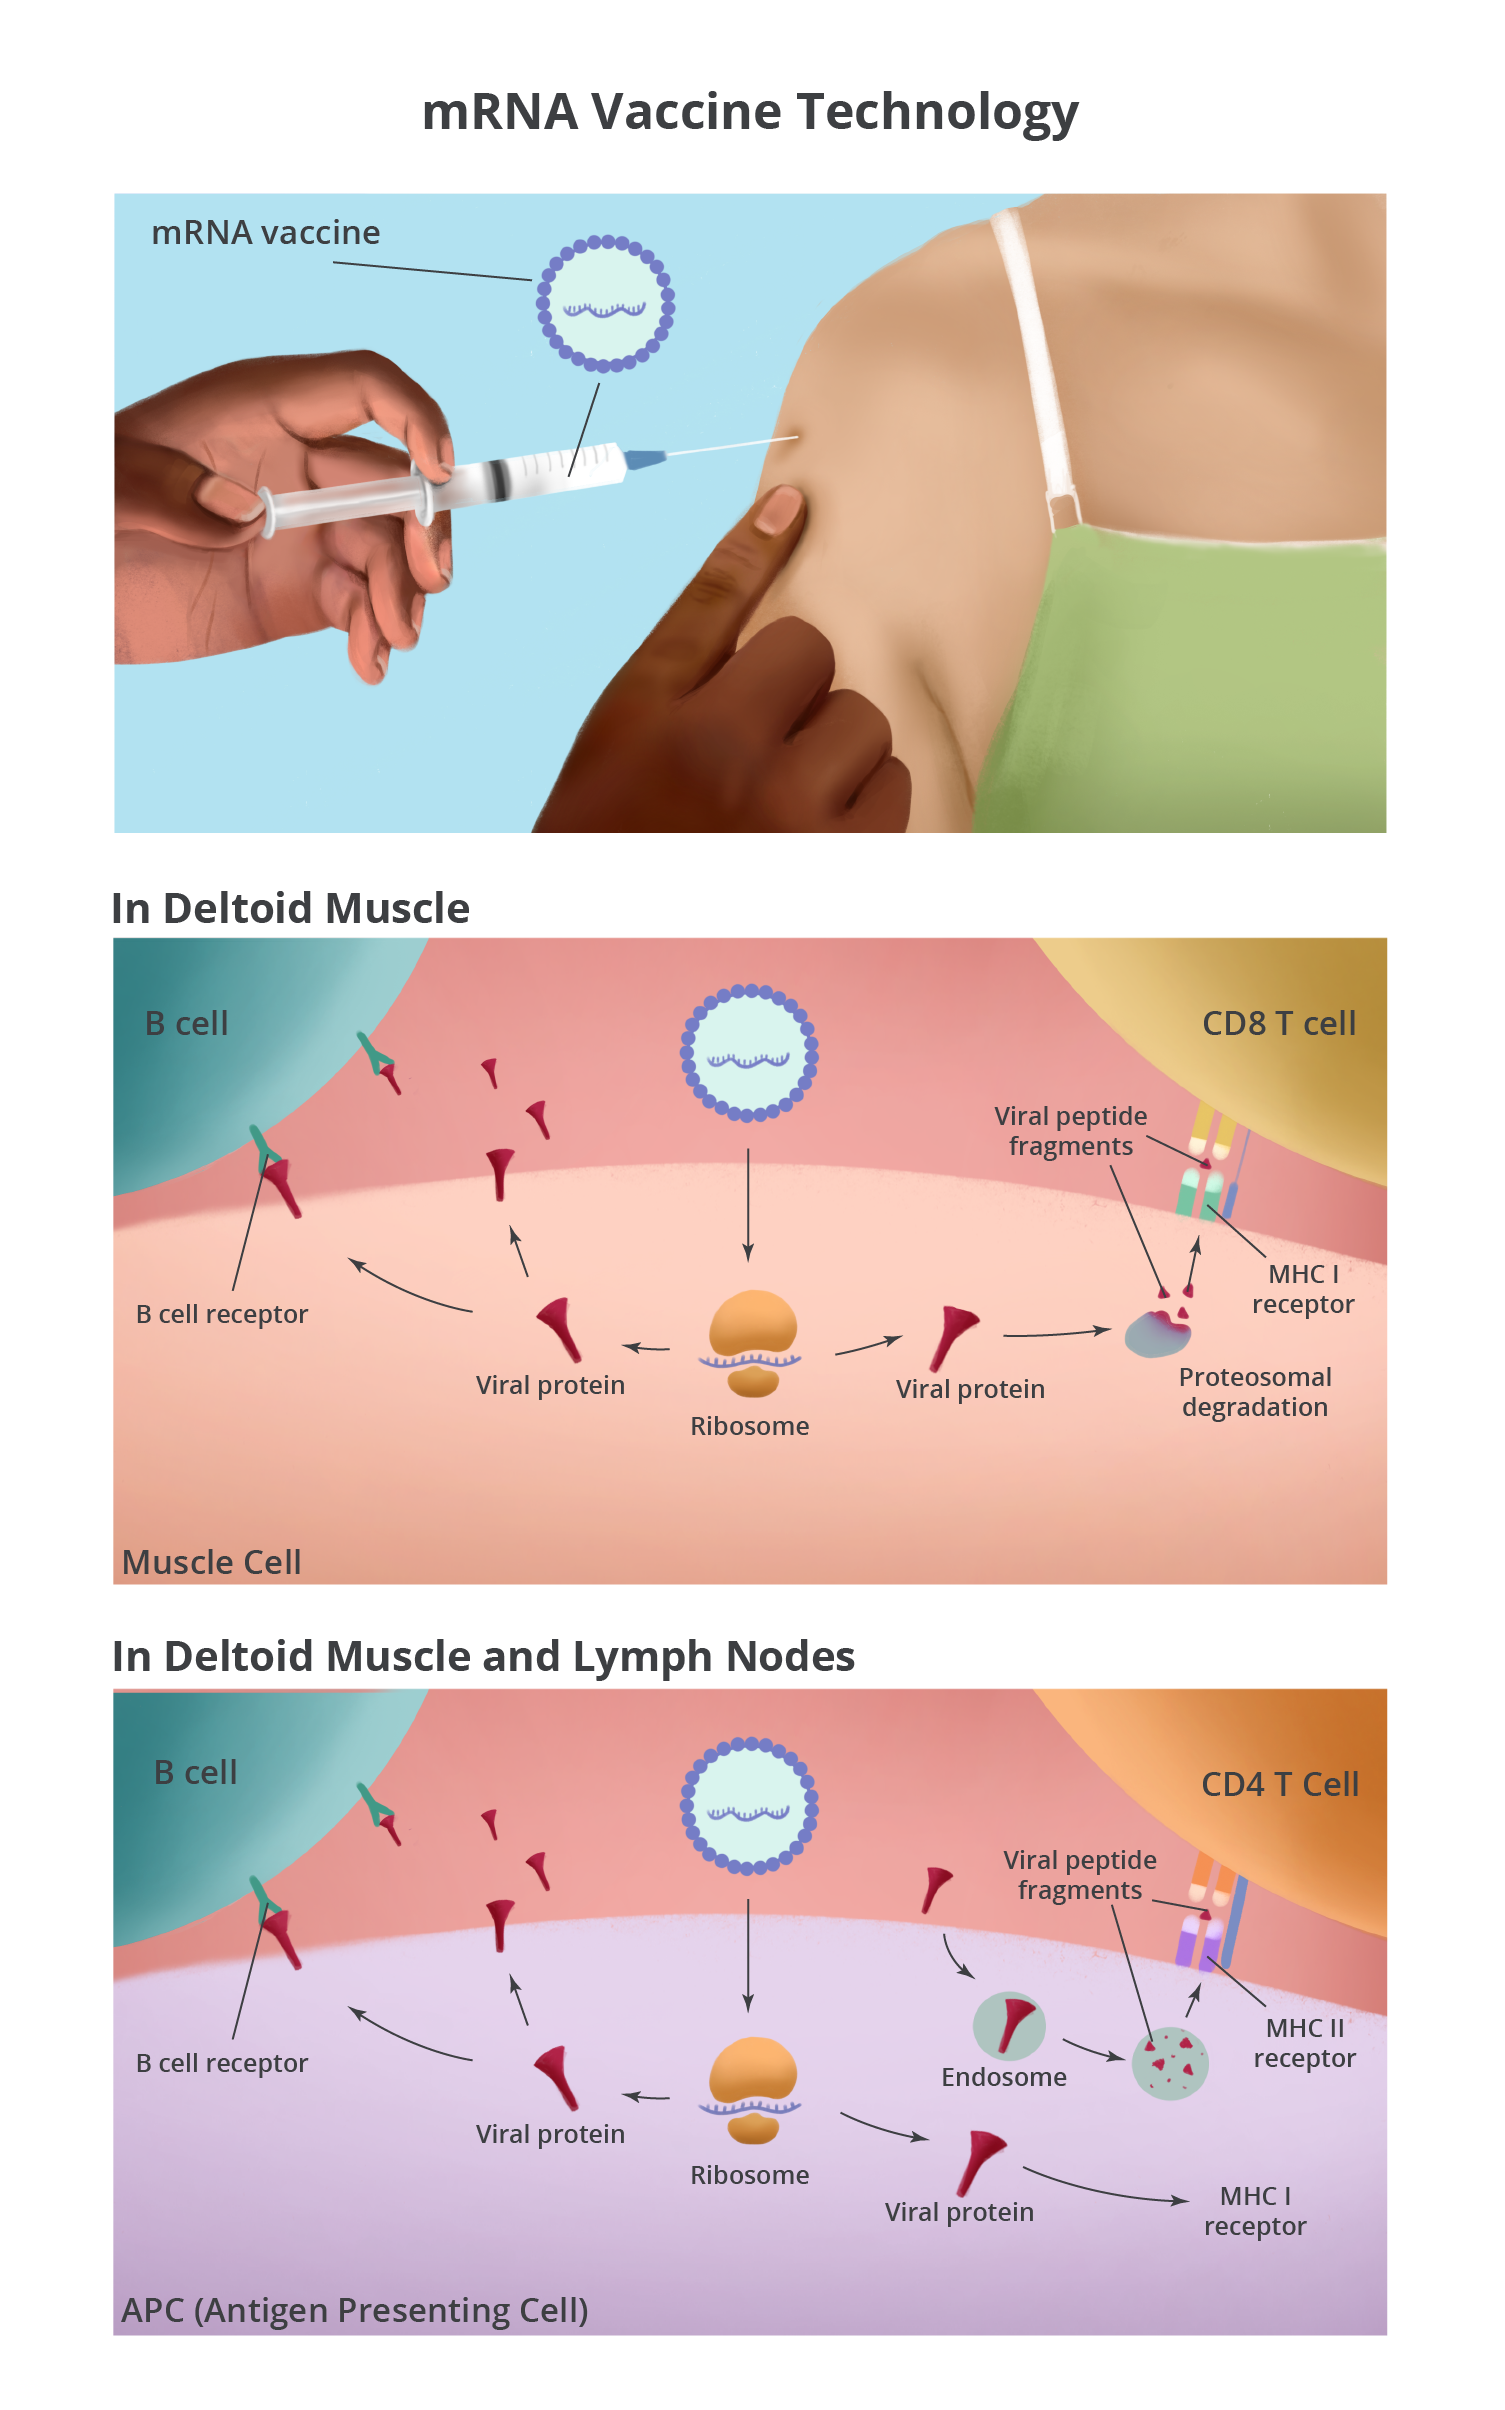 mRNA vaccine is injected into the muscle of the upper arm, creating an immune response. The details are described in the paragraphs below.